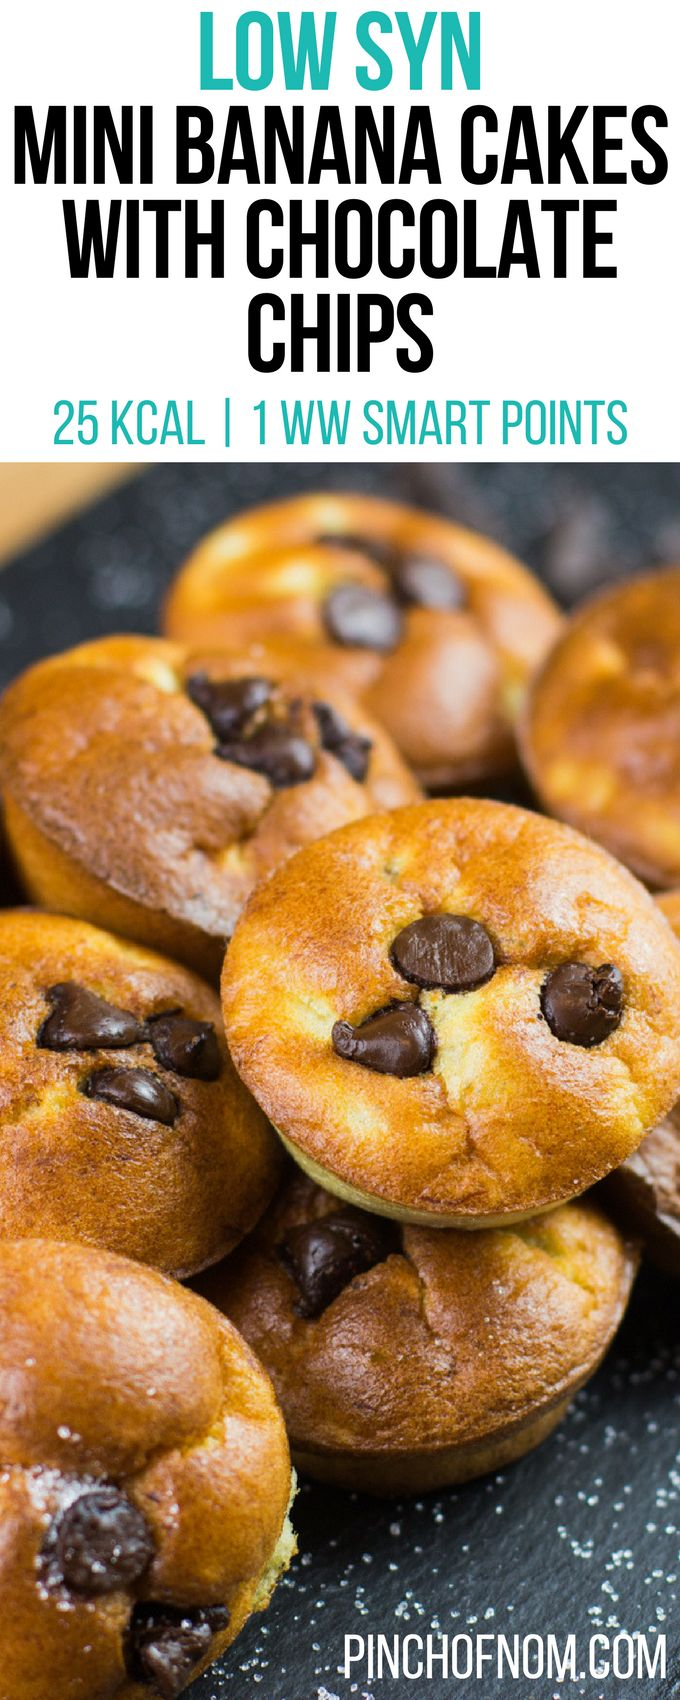 Low Syn Mini Banana Cakes with Chocolate Chips | Pinch Of Nom Slimming World Recipes     25 kcal | 2 Syns | 1 Weight Watchers Smart Points